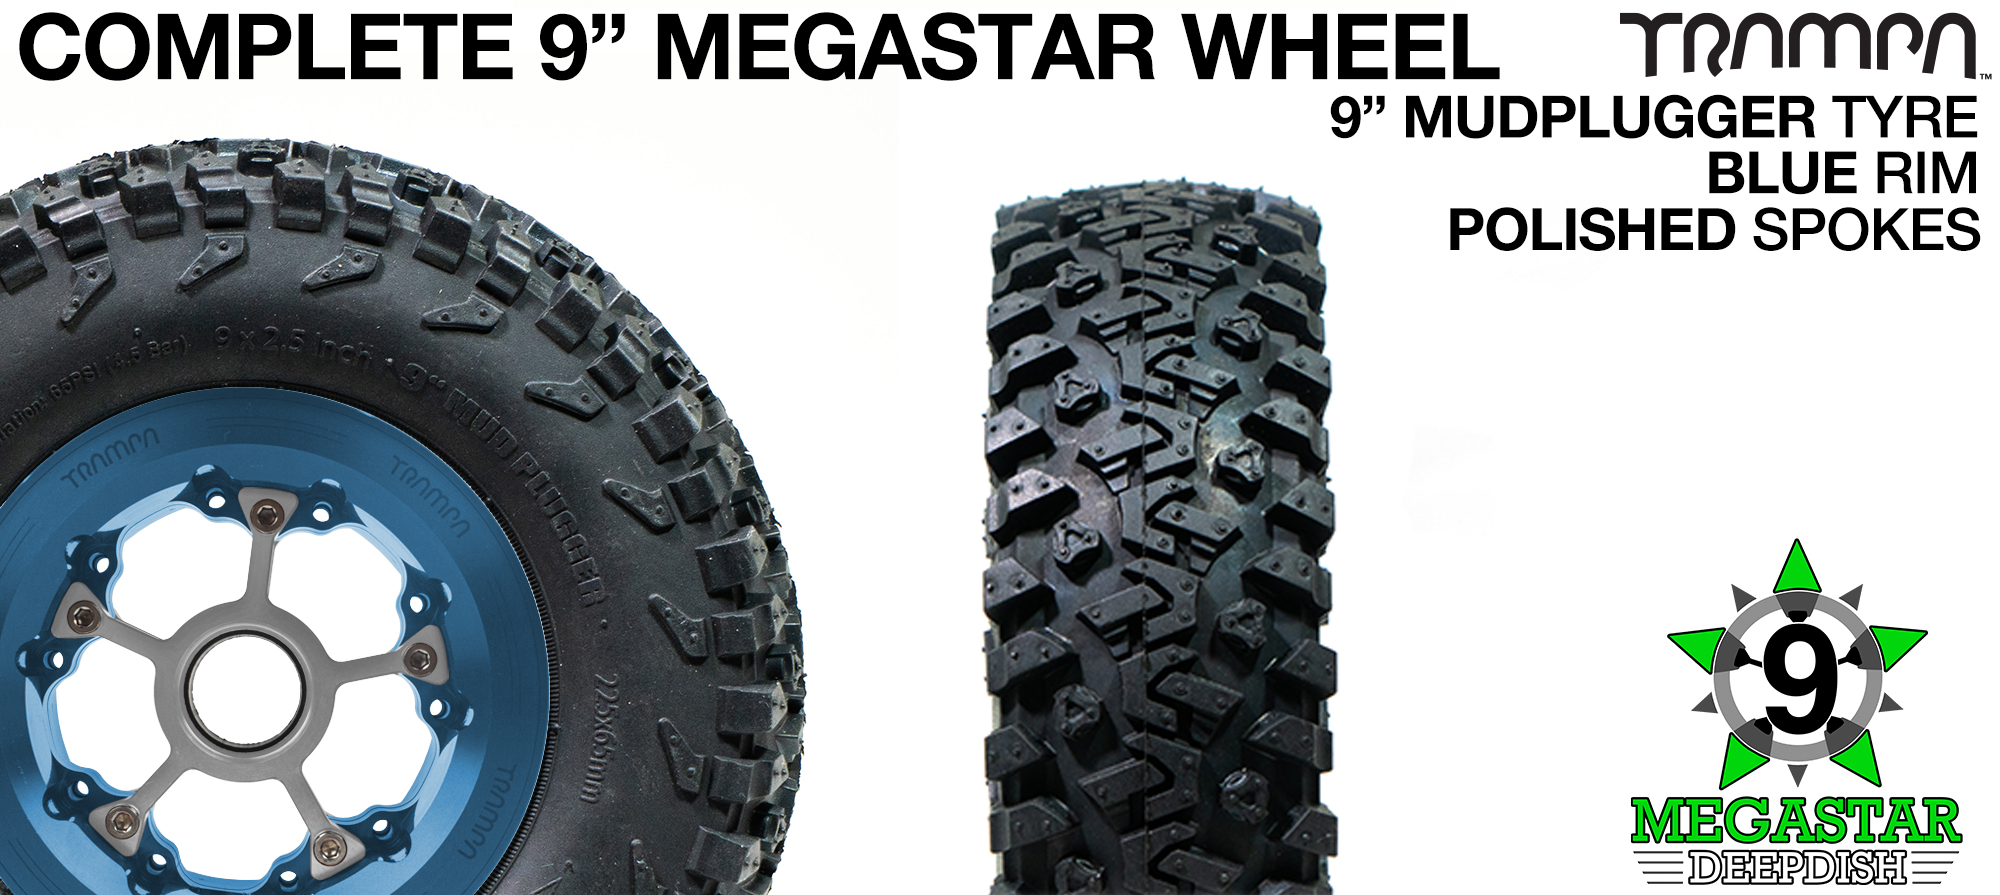 BLUE 9 inch Deep-Dish MEGASTARS Rim with POLISHED Spokes & 9 Inch MUDPLUGGER Tyres